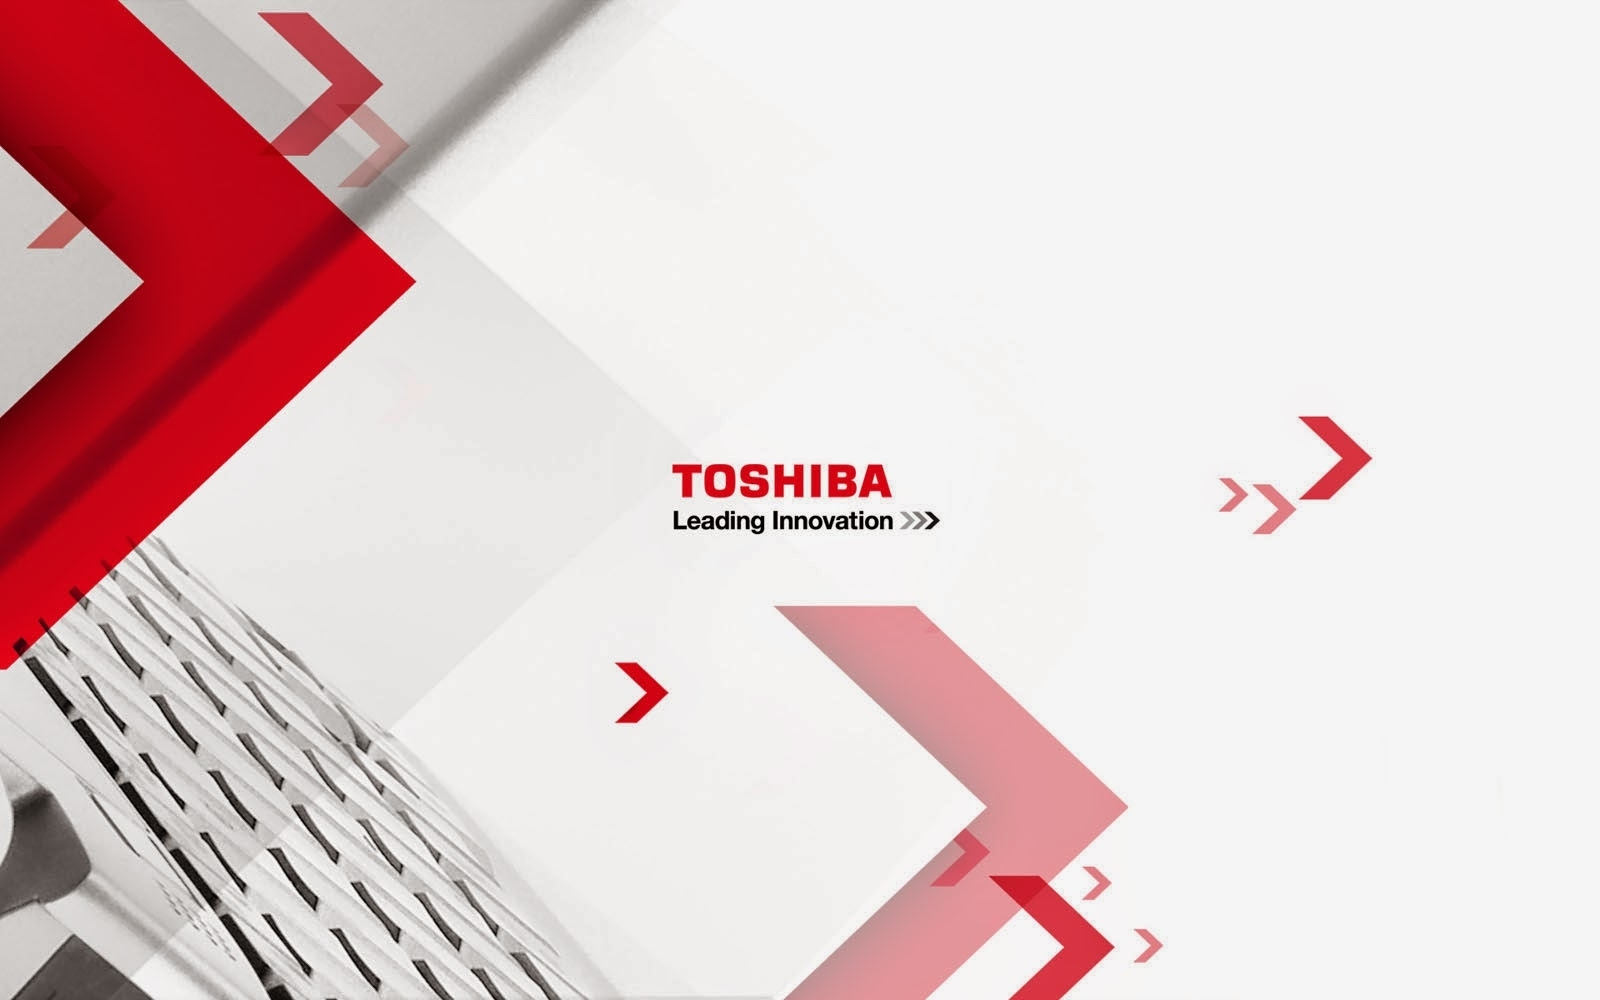 toshiba wallpaper - wallpapers and pictures